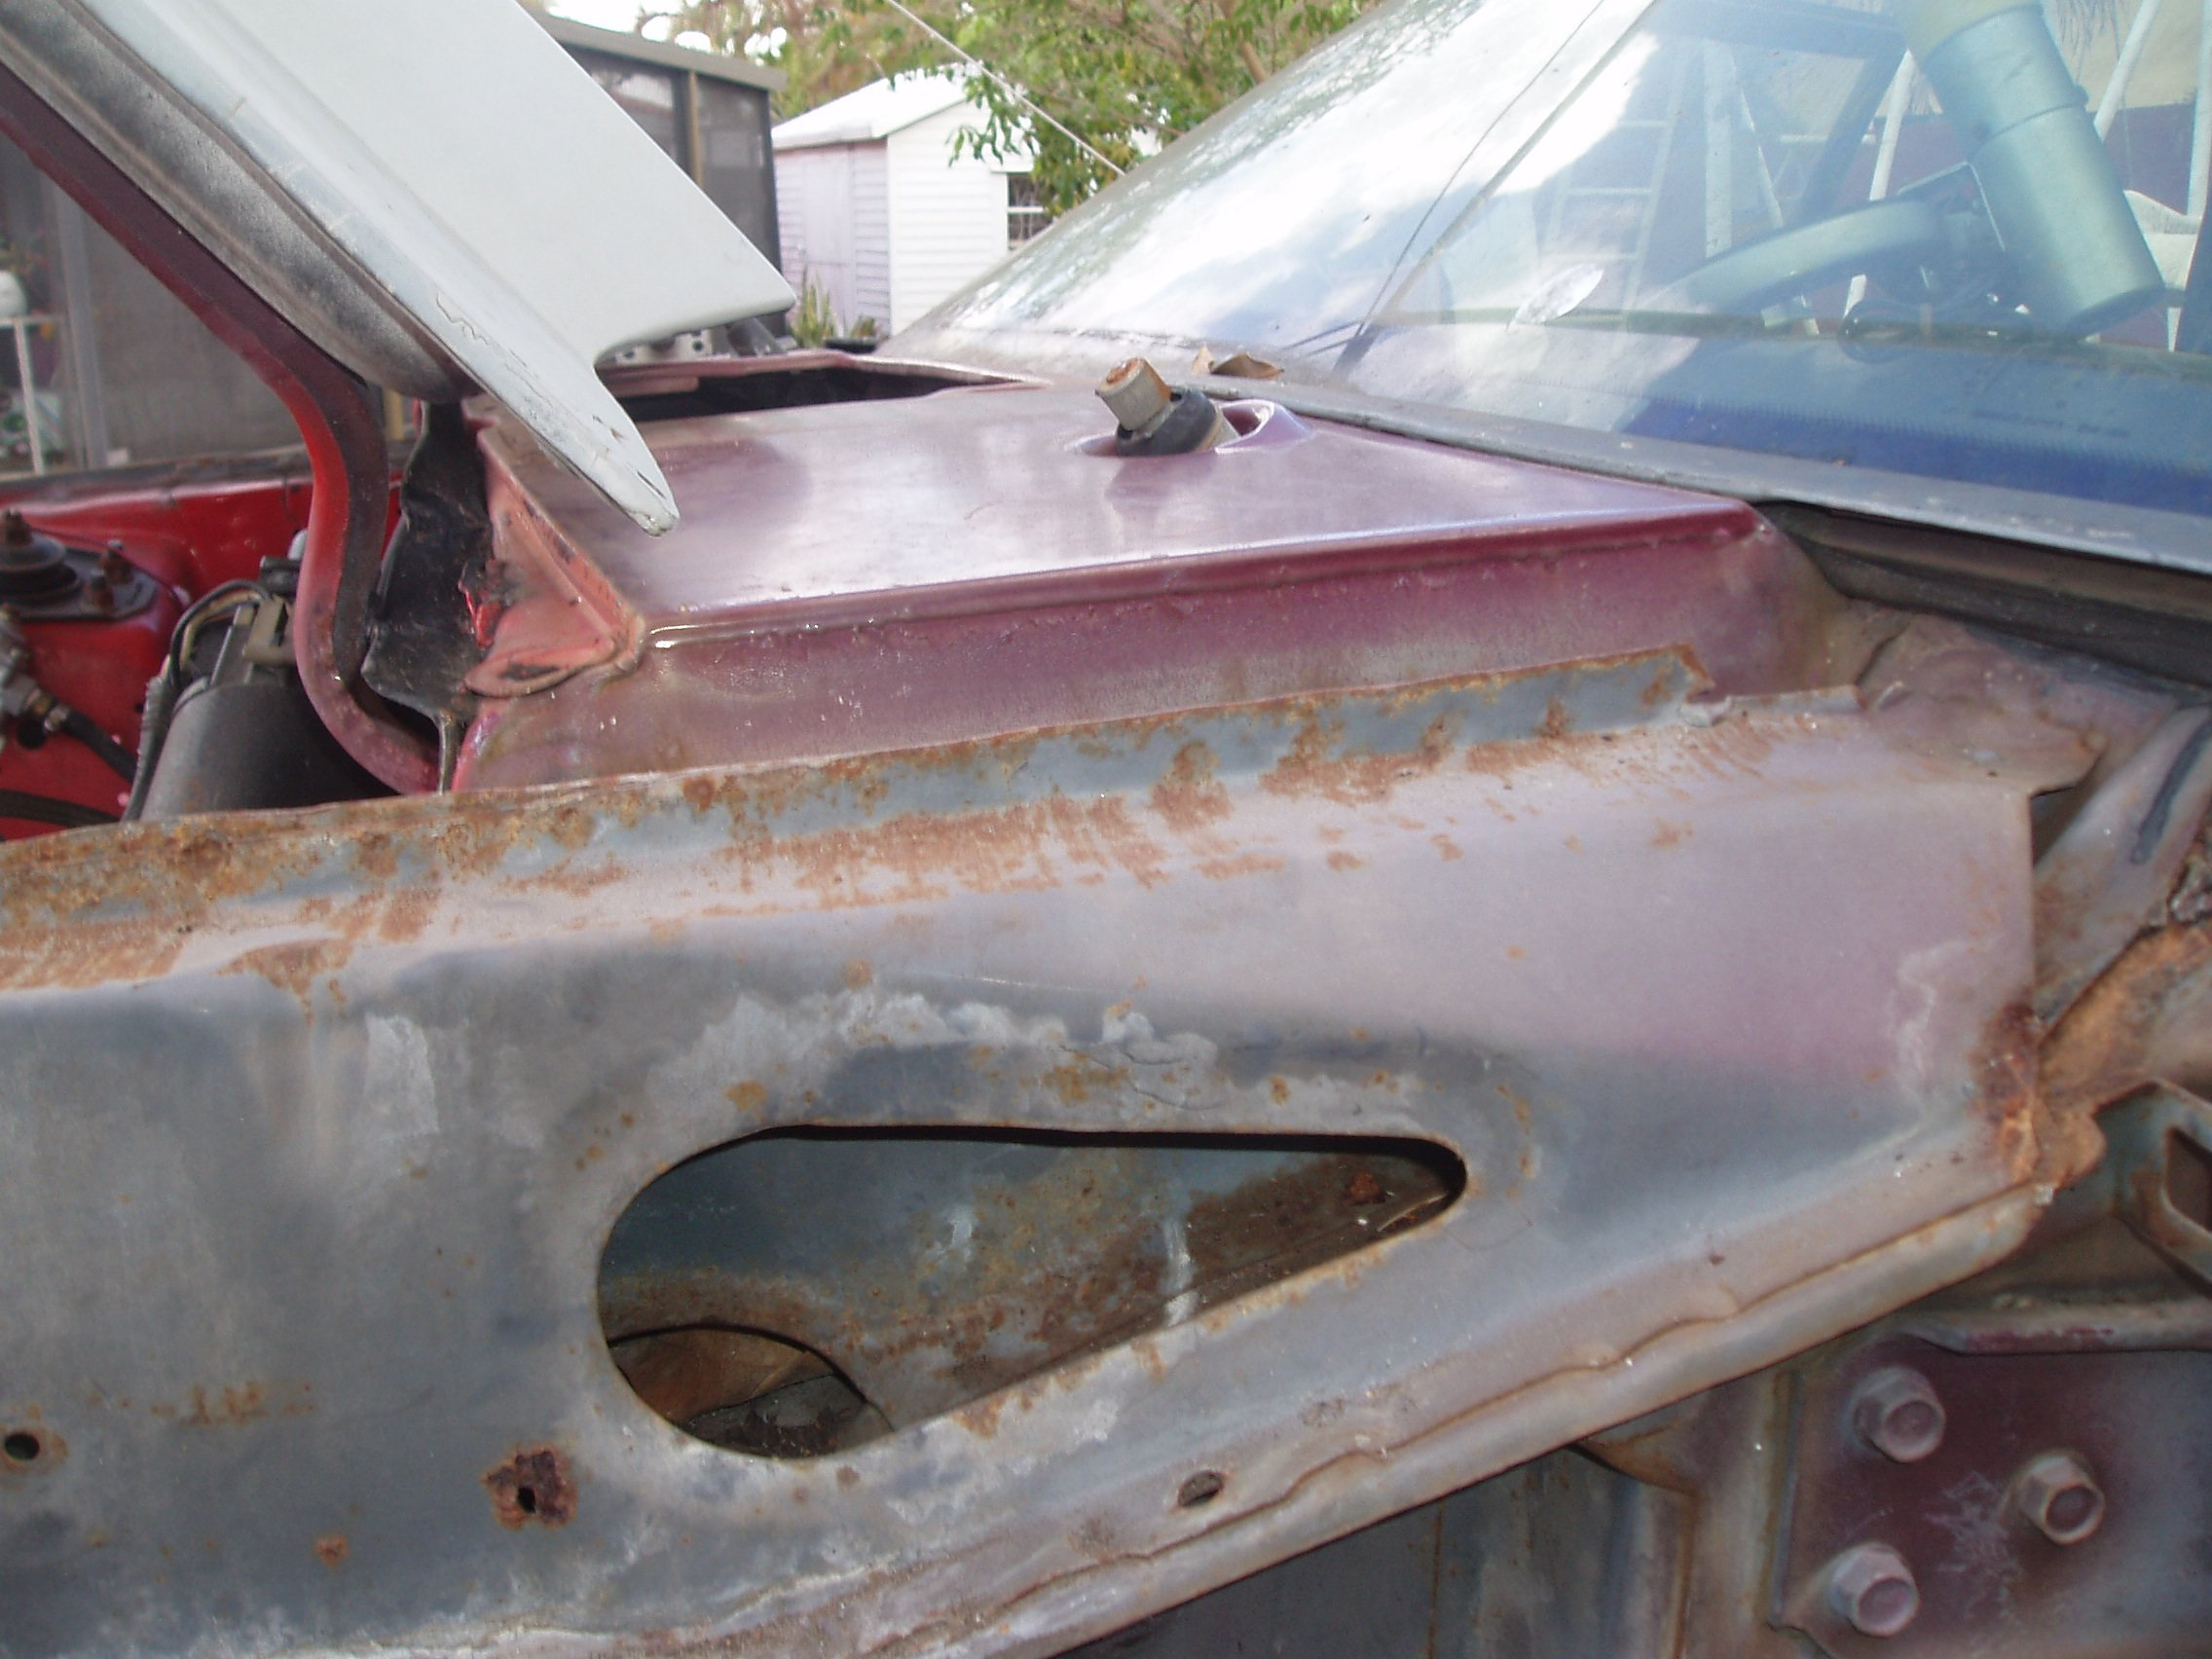 1989 Mustang Coupe Rust Repair And Weld Questions Please Help